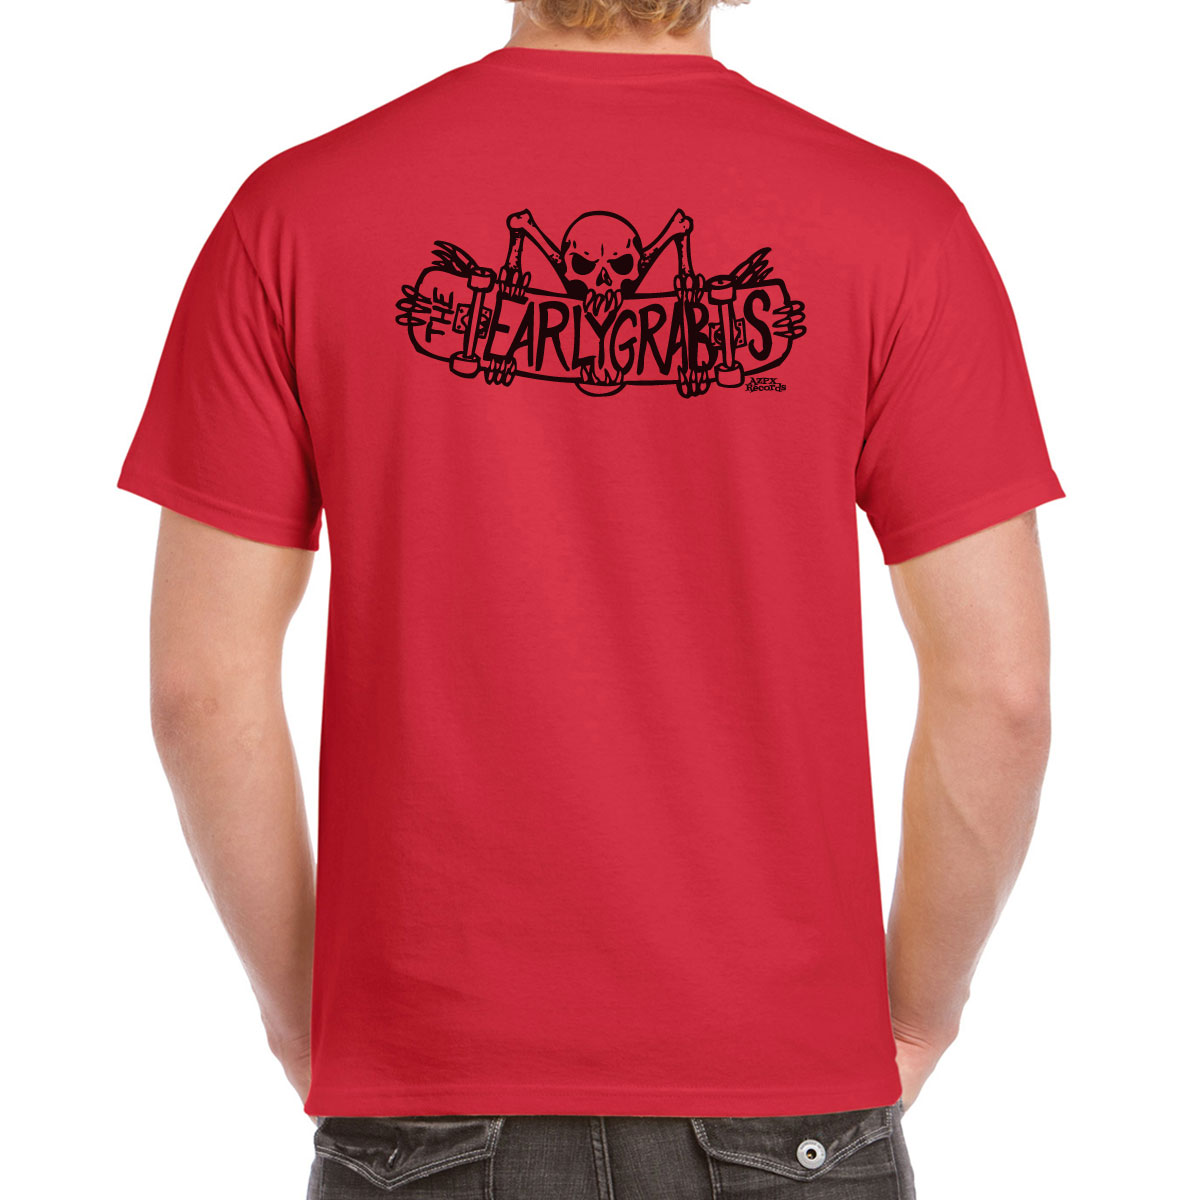 The Earlygrabs Red T-shirt